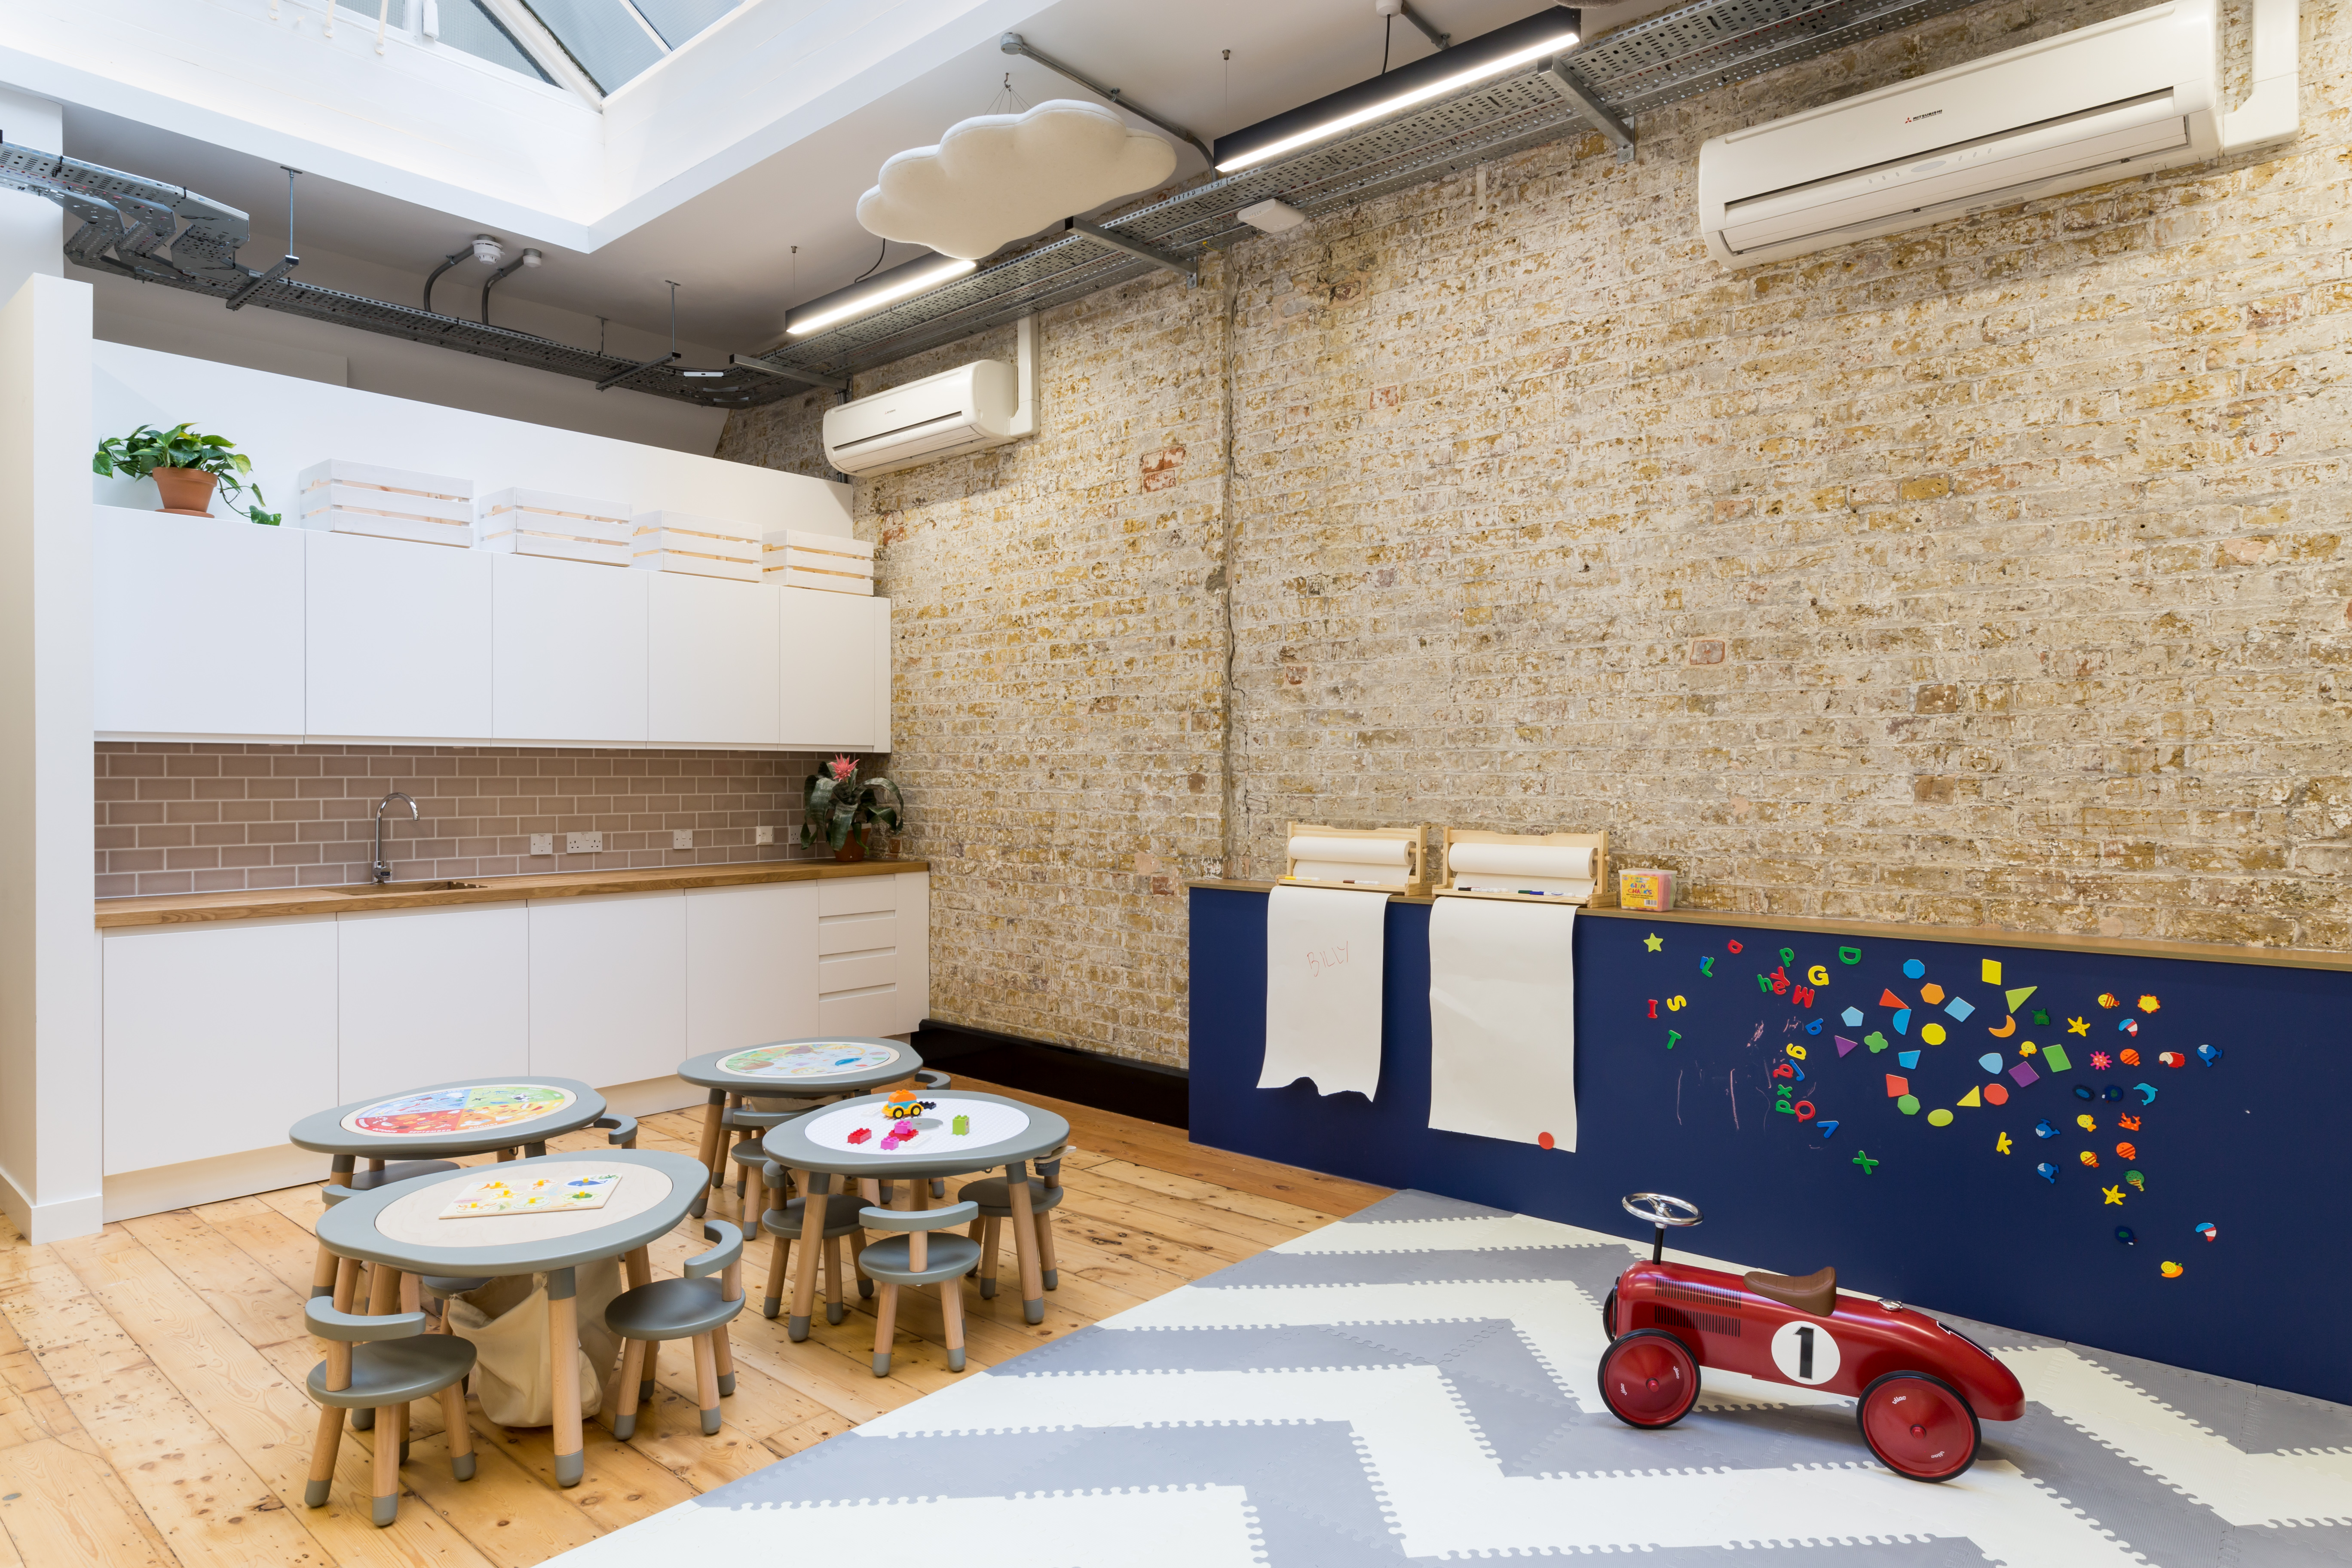 co-working space with creche